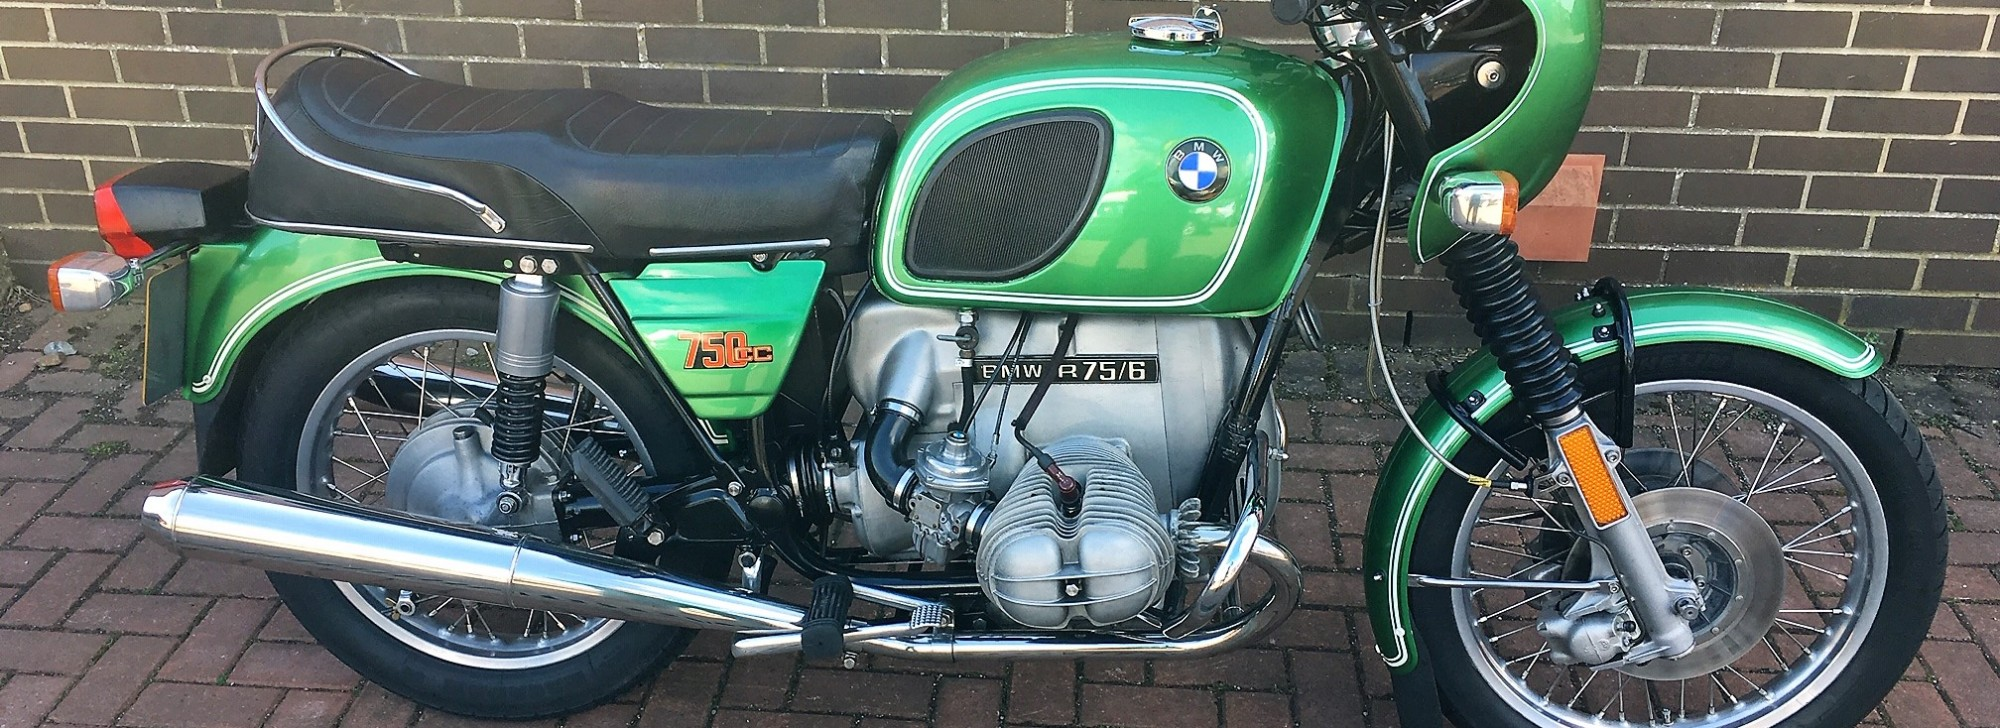 1975 BMW R75 after